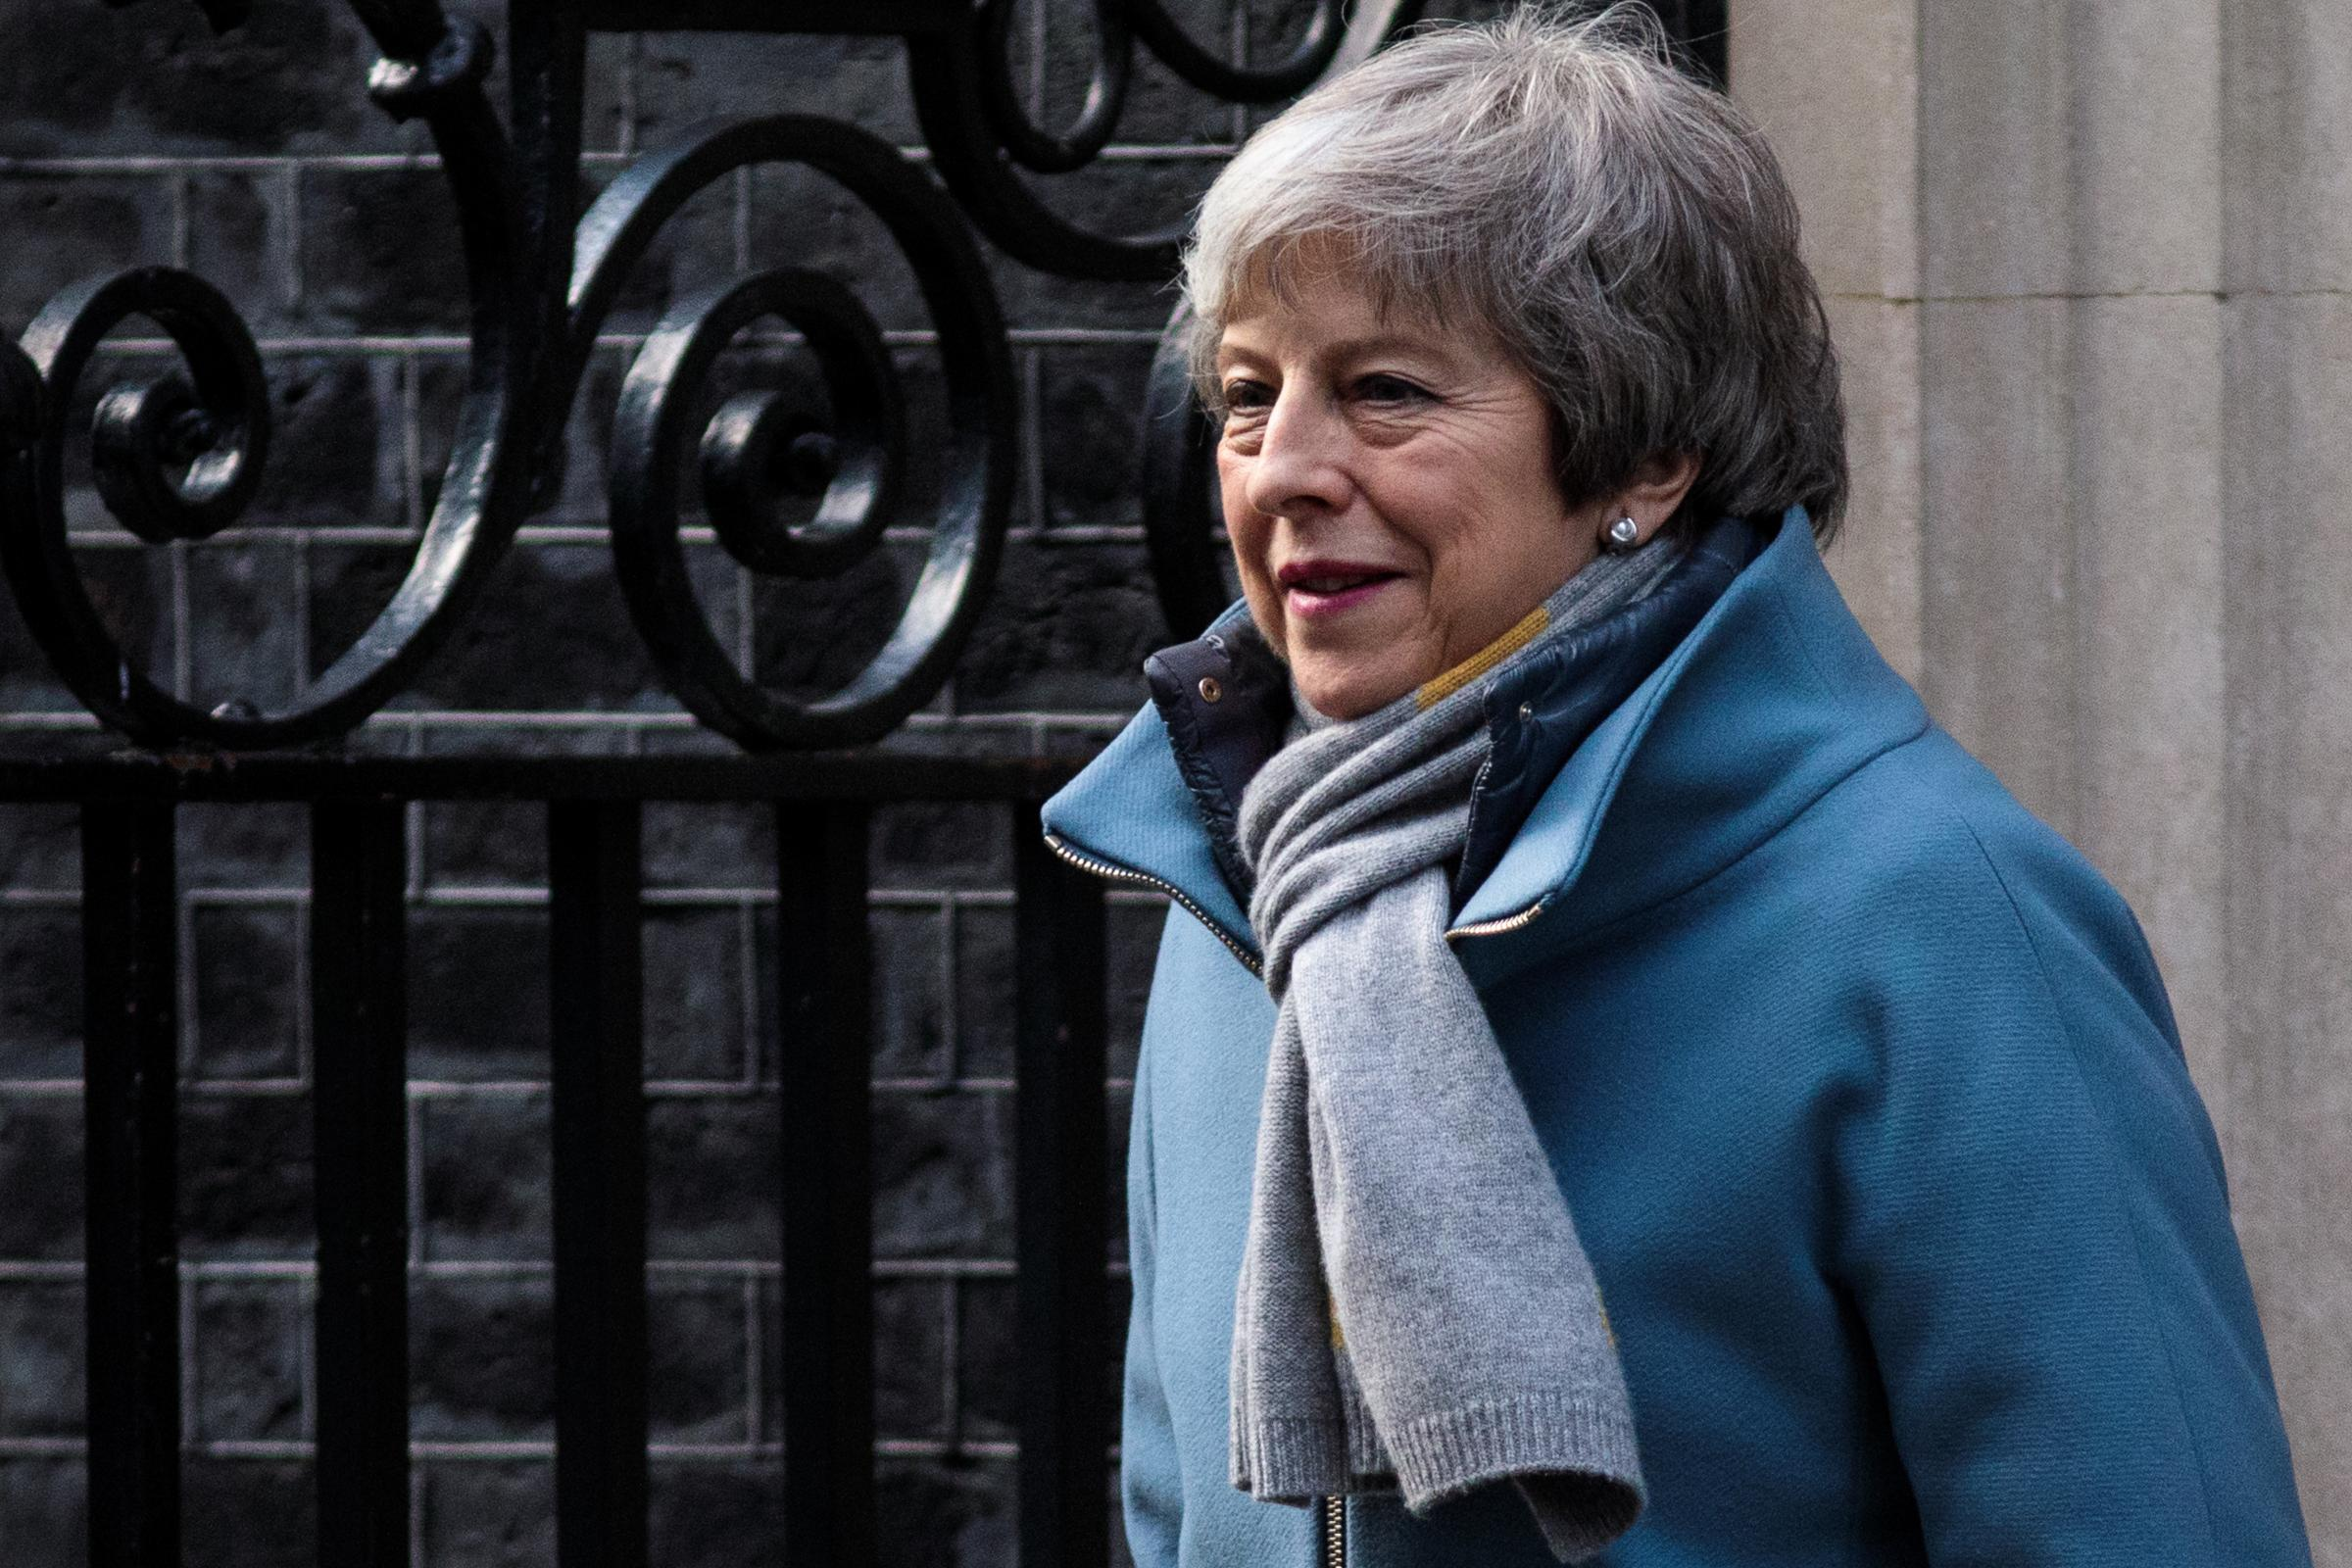 May criticised for not responding to climate protesters' requests